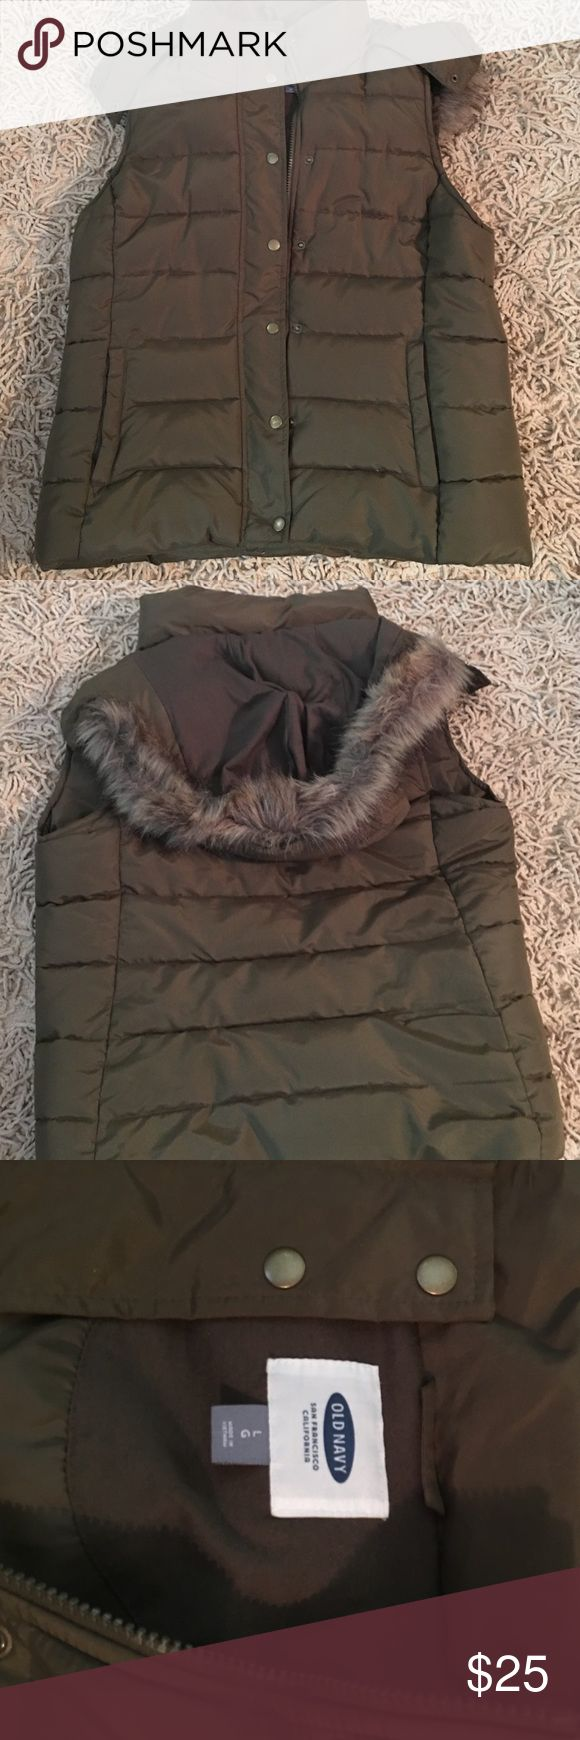 WOMENS Lrg. Old Navy vest with removable hoodie. Hunters Green faux fur removable hoodie. Very warm and comfy. Old Navy Jackets & Coats Jean Jackets